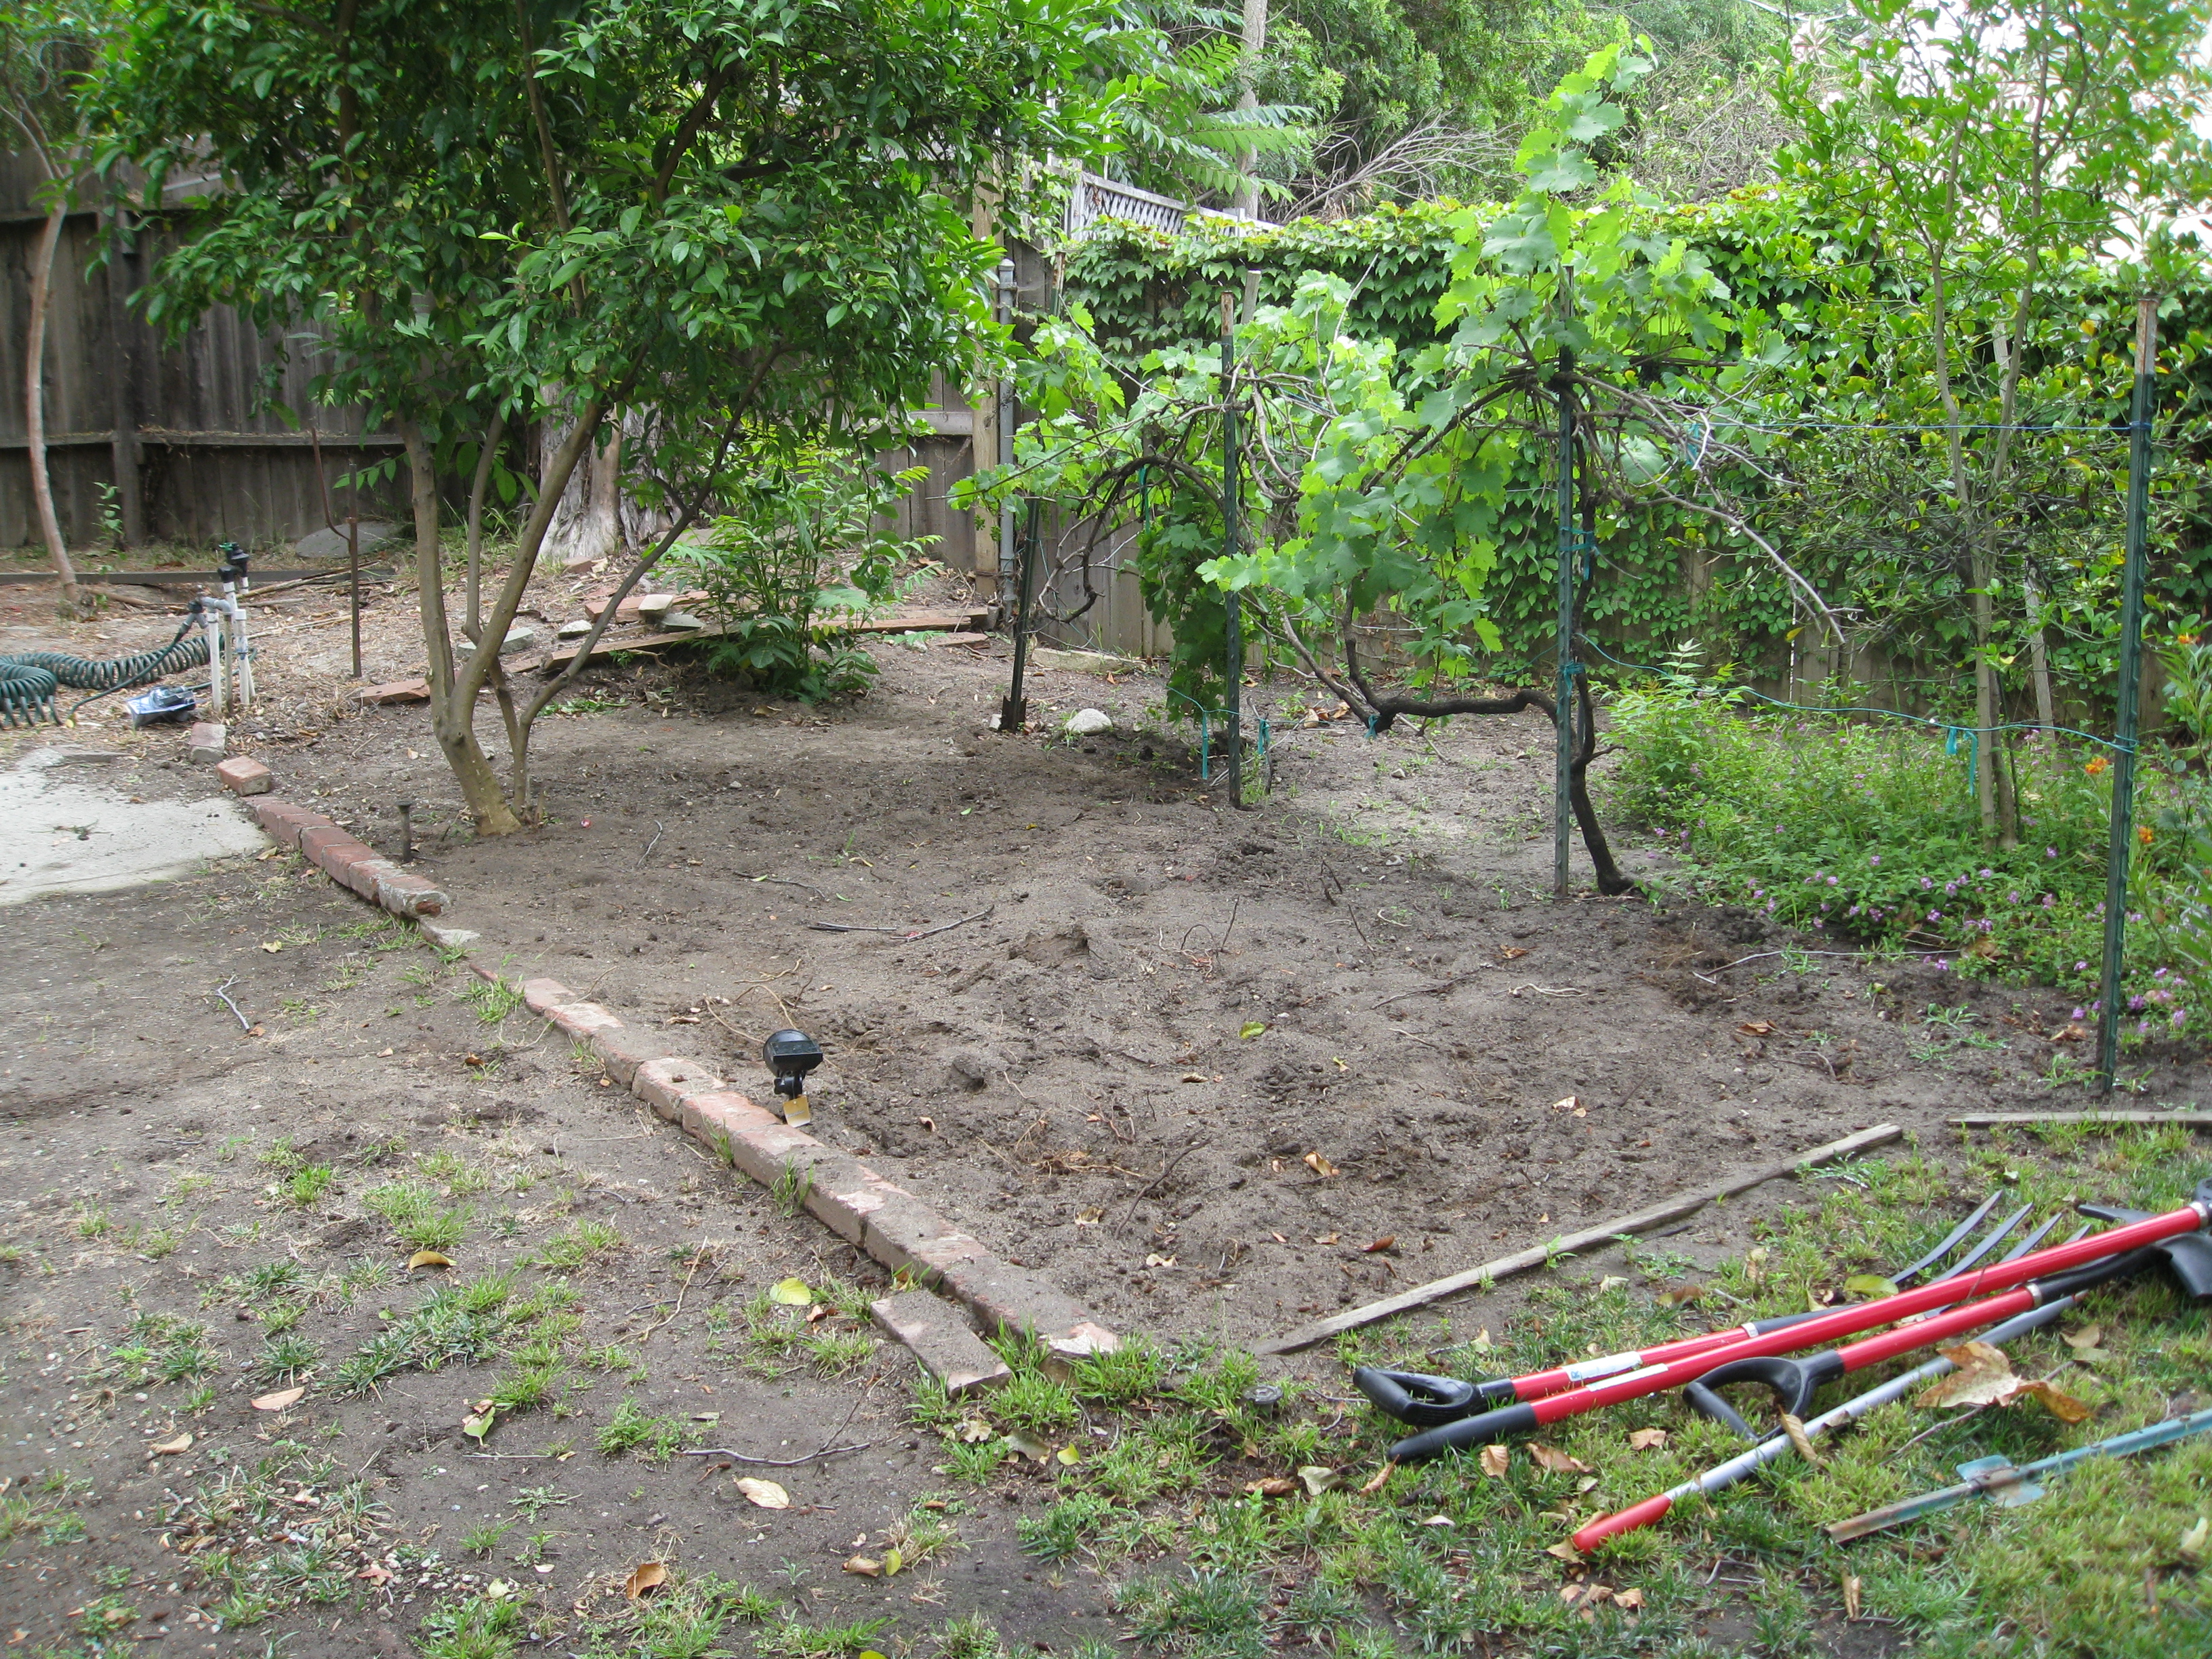 A citrus tree and grape vine form the boundaries of the garden space. Roots from nearby trees make digging difficult.